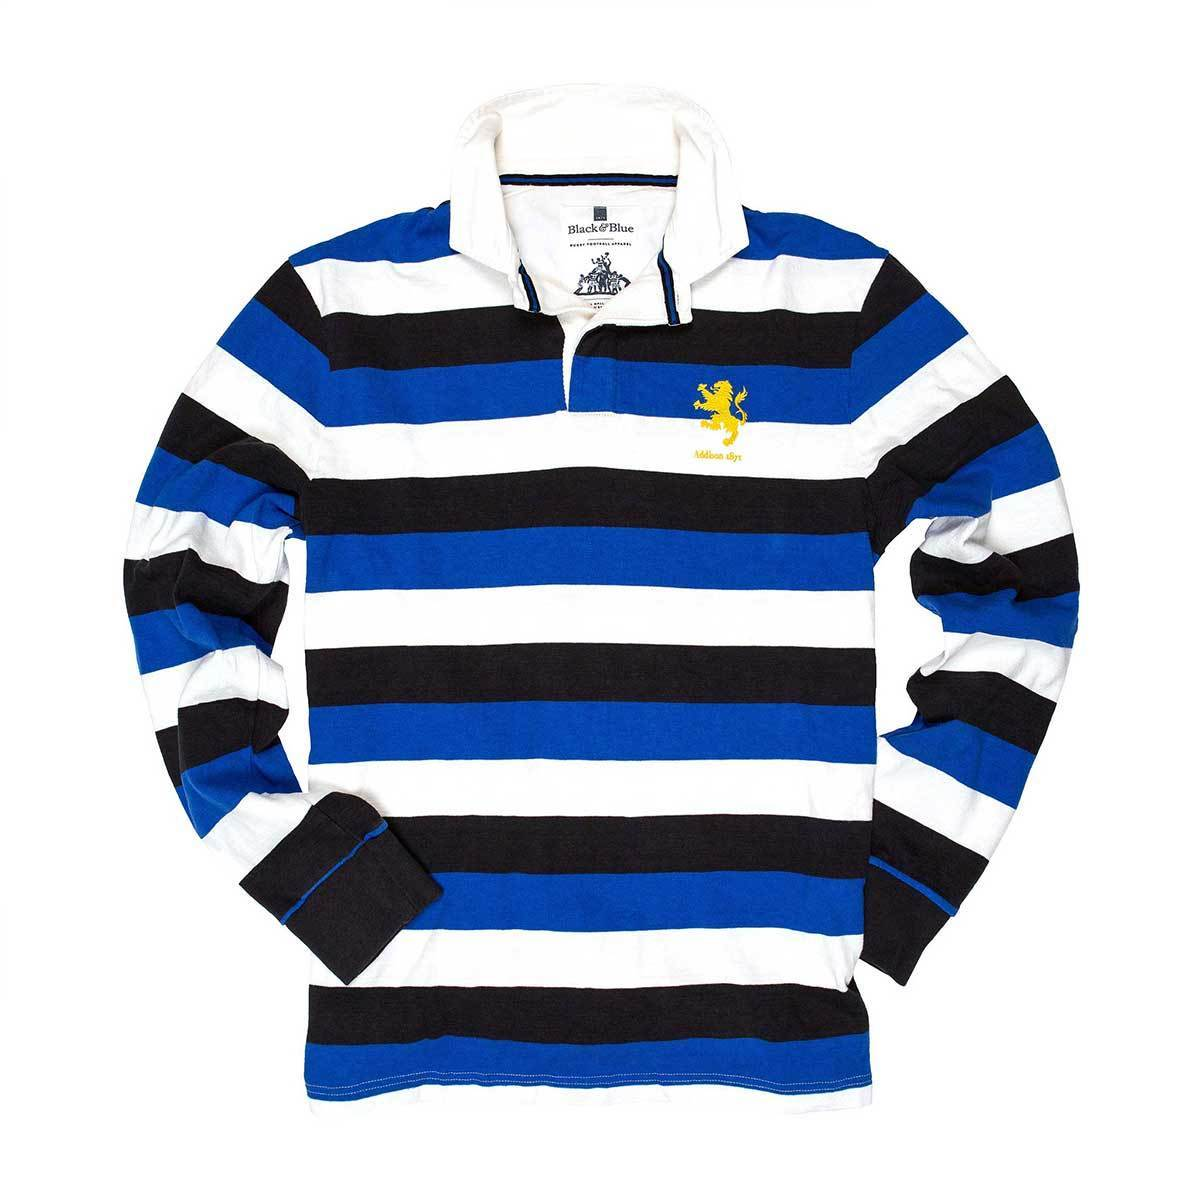 Vintage, Classic Cotton Rugby Shirt | Black & Blue 1871 | Addison 1871 Rugby Shirt